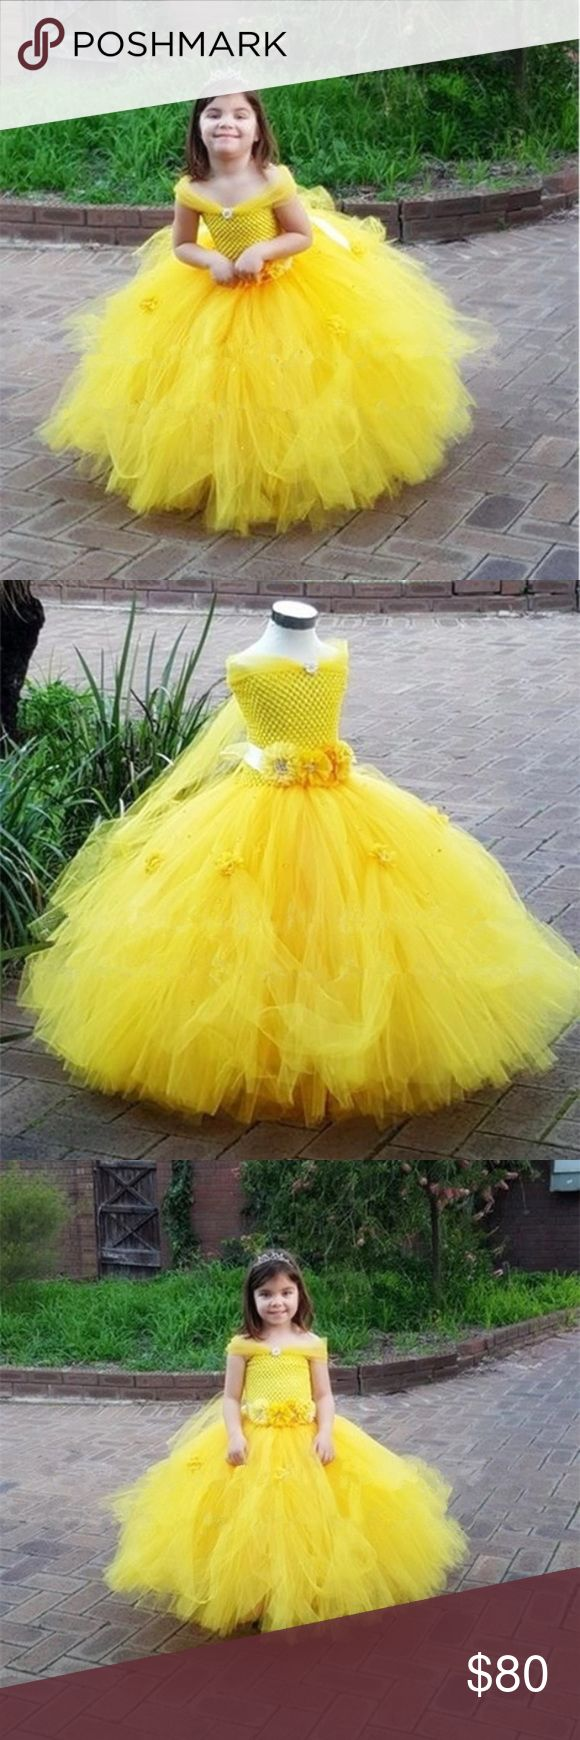 Handmade Belle Tutu Dress Costume Disney Princess 🌟NOTICE: Please allow up to 4 weeks for processing and delivery.🌟 ID00K08 Disney Dresses Formal